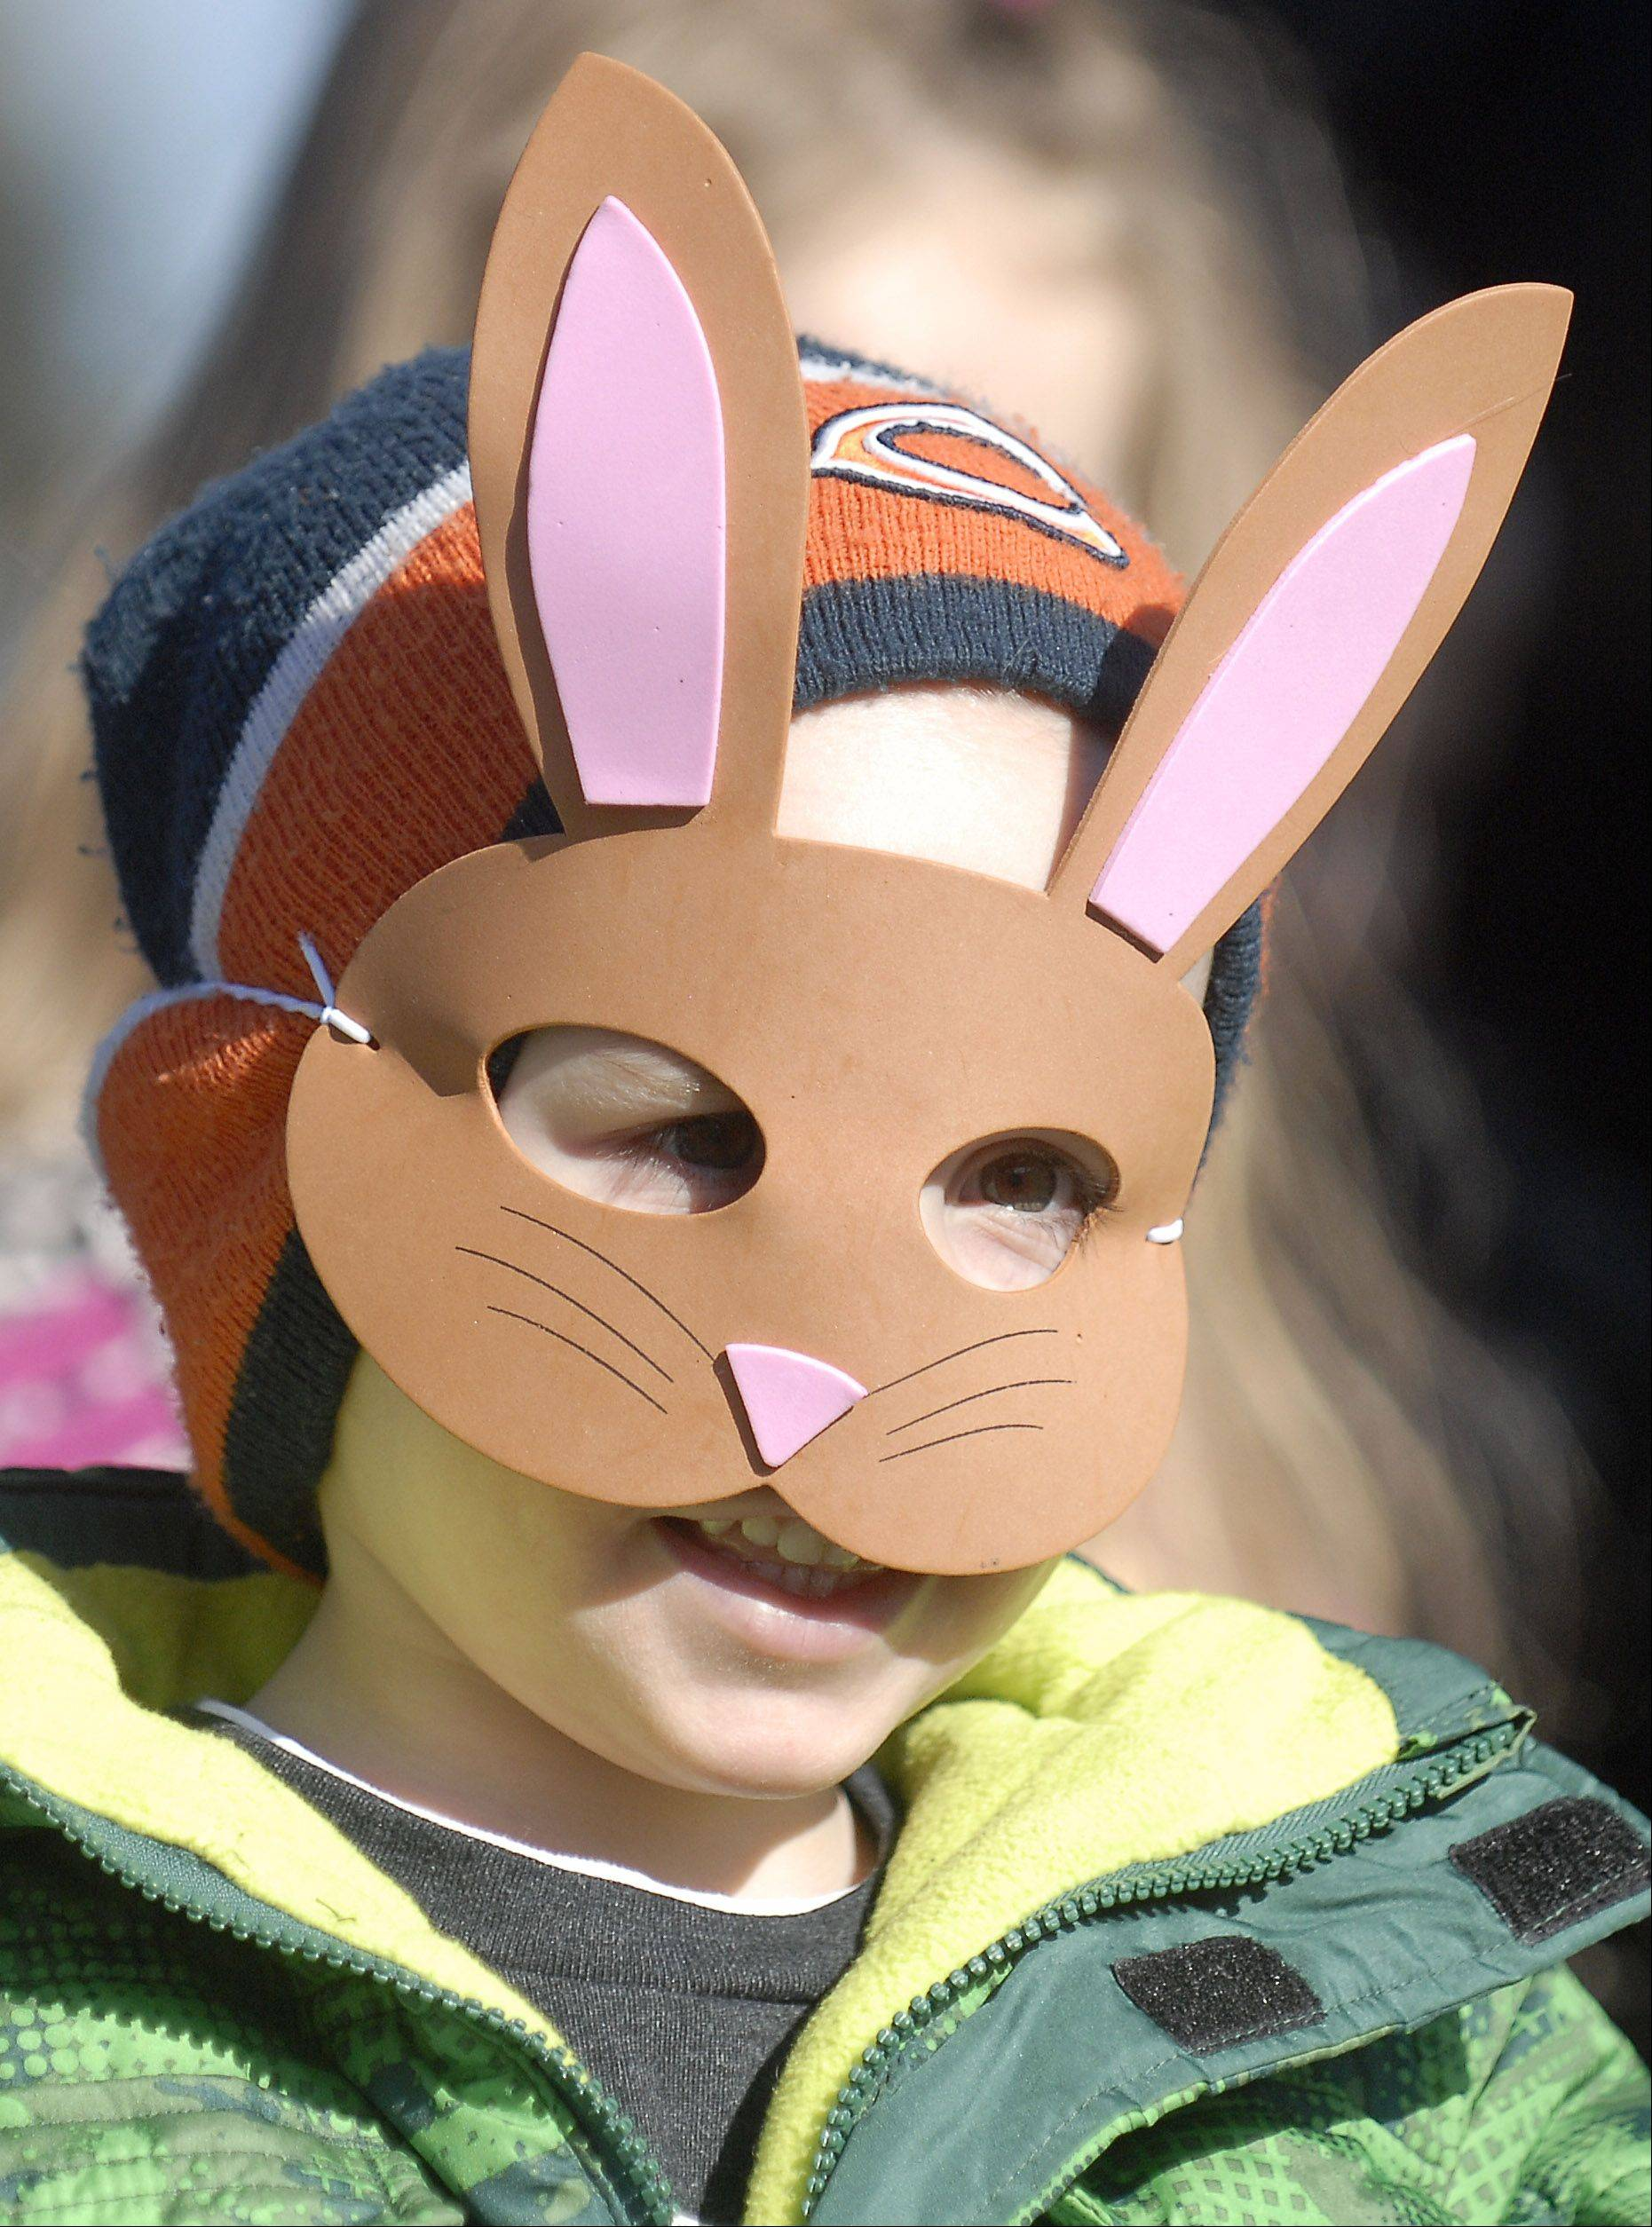 Michael Schero, 4, of St. Charles, patiently waits at the starting line of the St. Charles Park District's Free Easter Egg Hunt at Pottawatomie Park. Given the choice of wearing bunny ears or a bunny mask, Michael decided on the mask, which actually was being worn by garden gnomes in their yard.